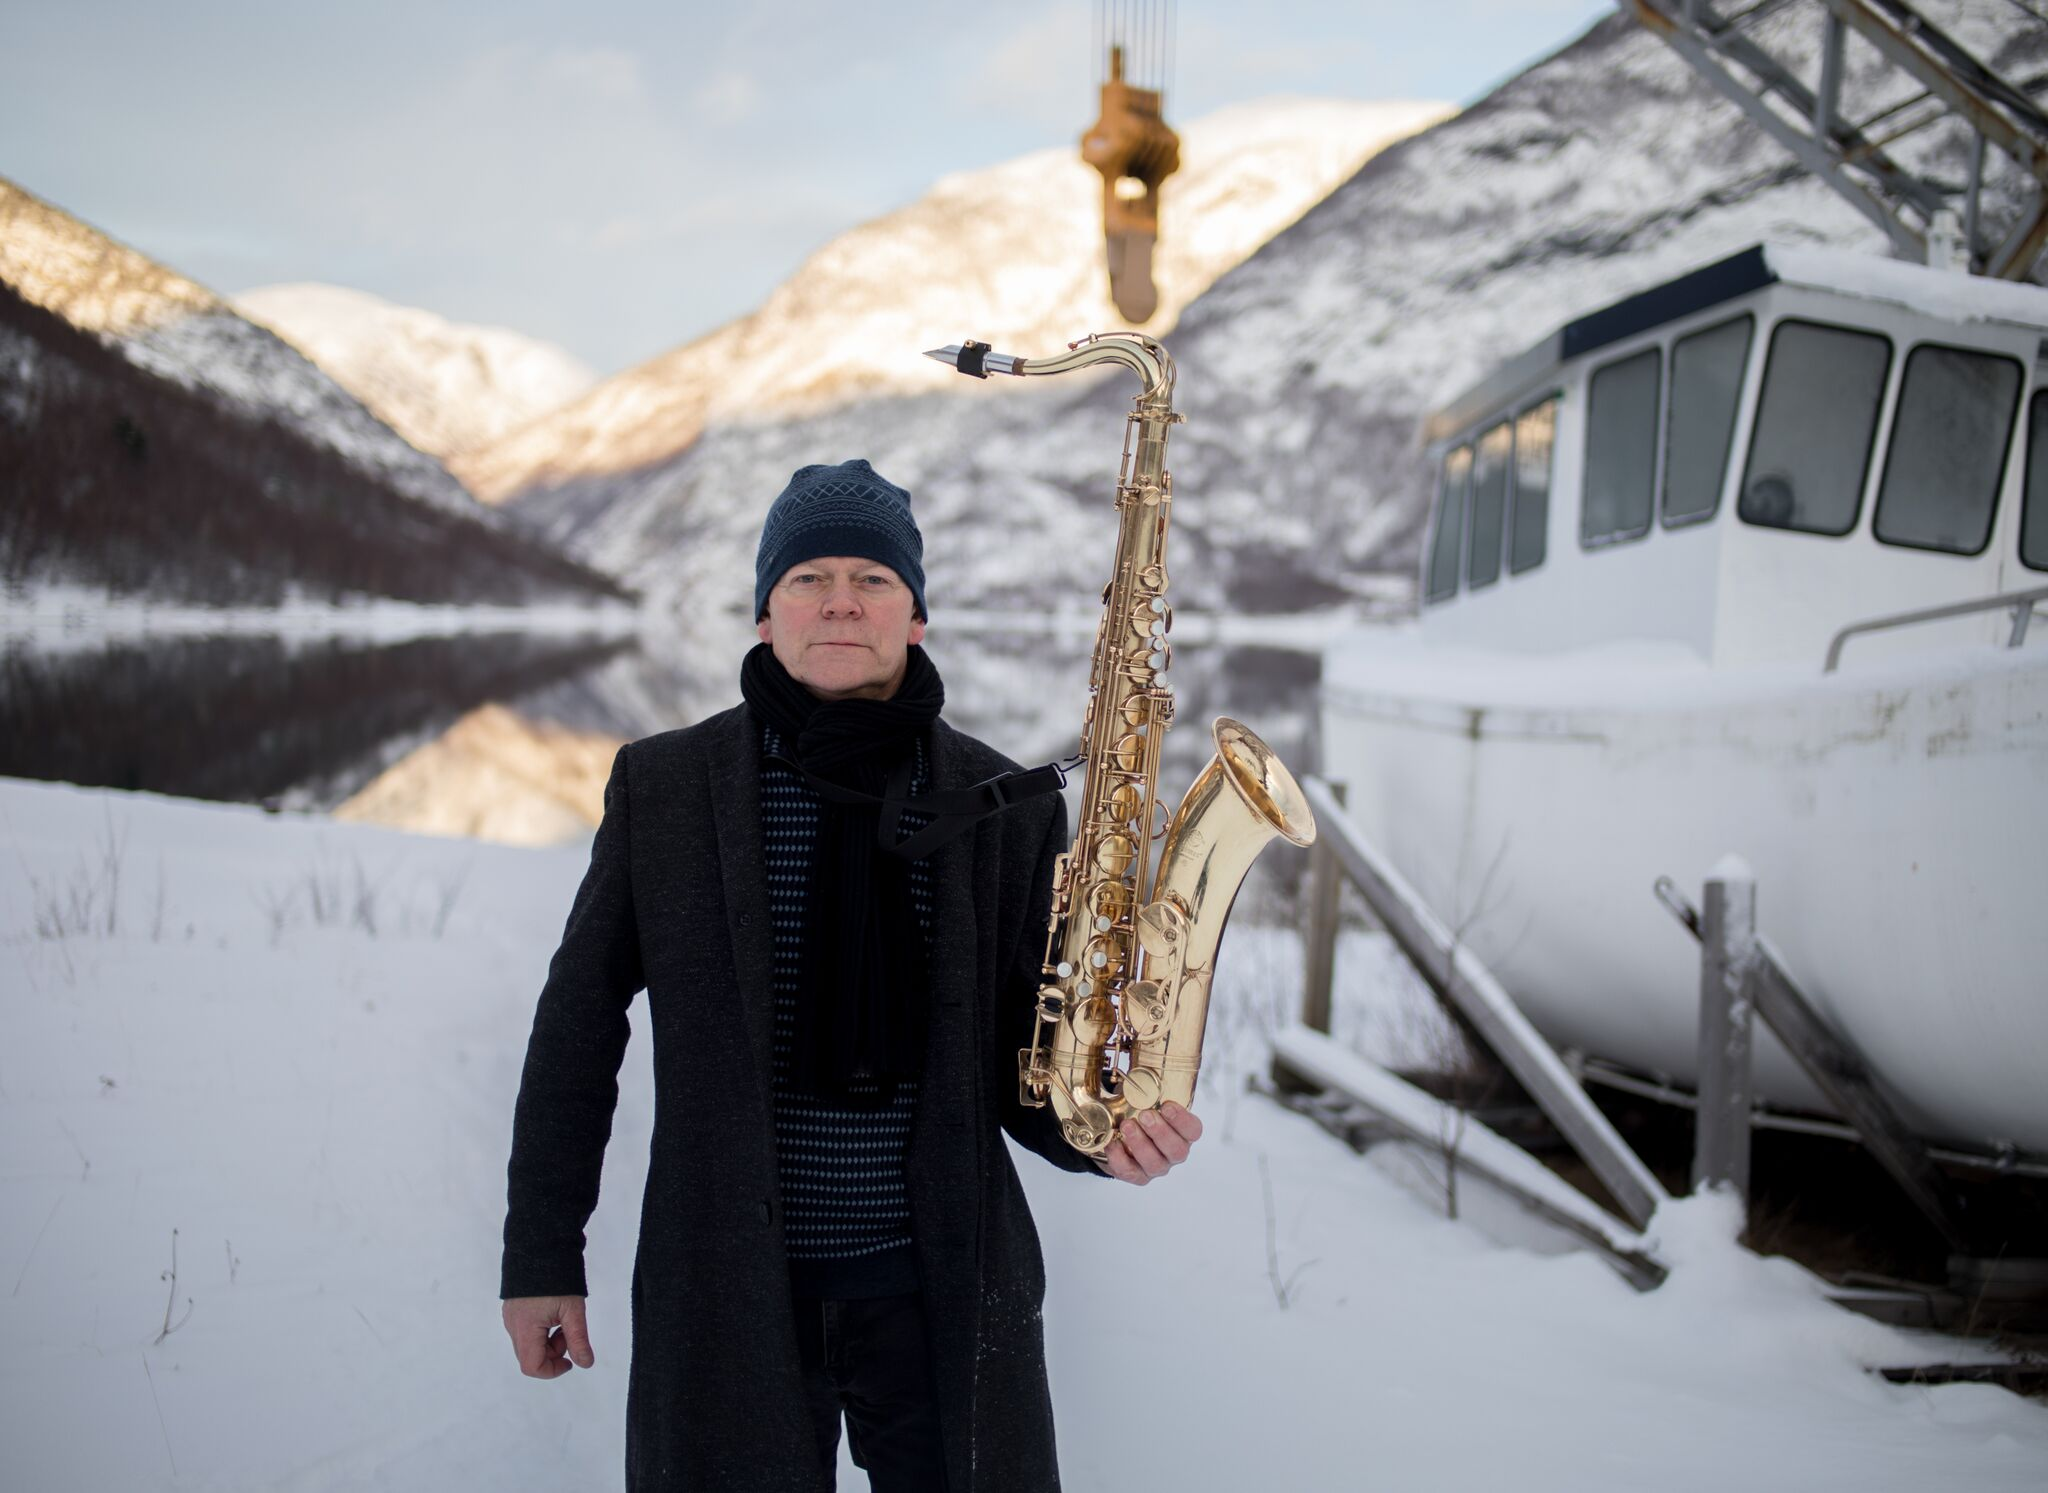 The composer, saxophone and goathorn player, Karl Seglem, is the first Norwegian act at the festival, playing with his acclaimed band on Wednesday 3rd. Photo: Oddleiv Apneseth